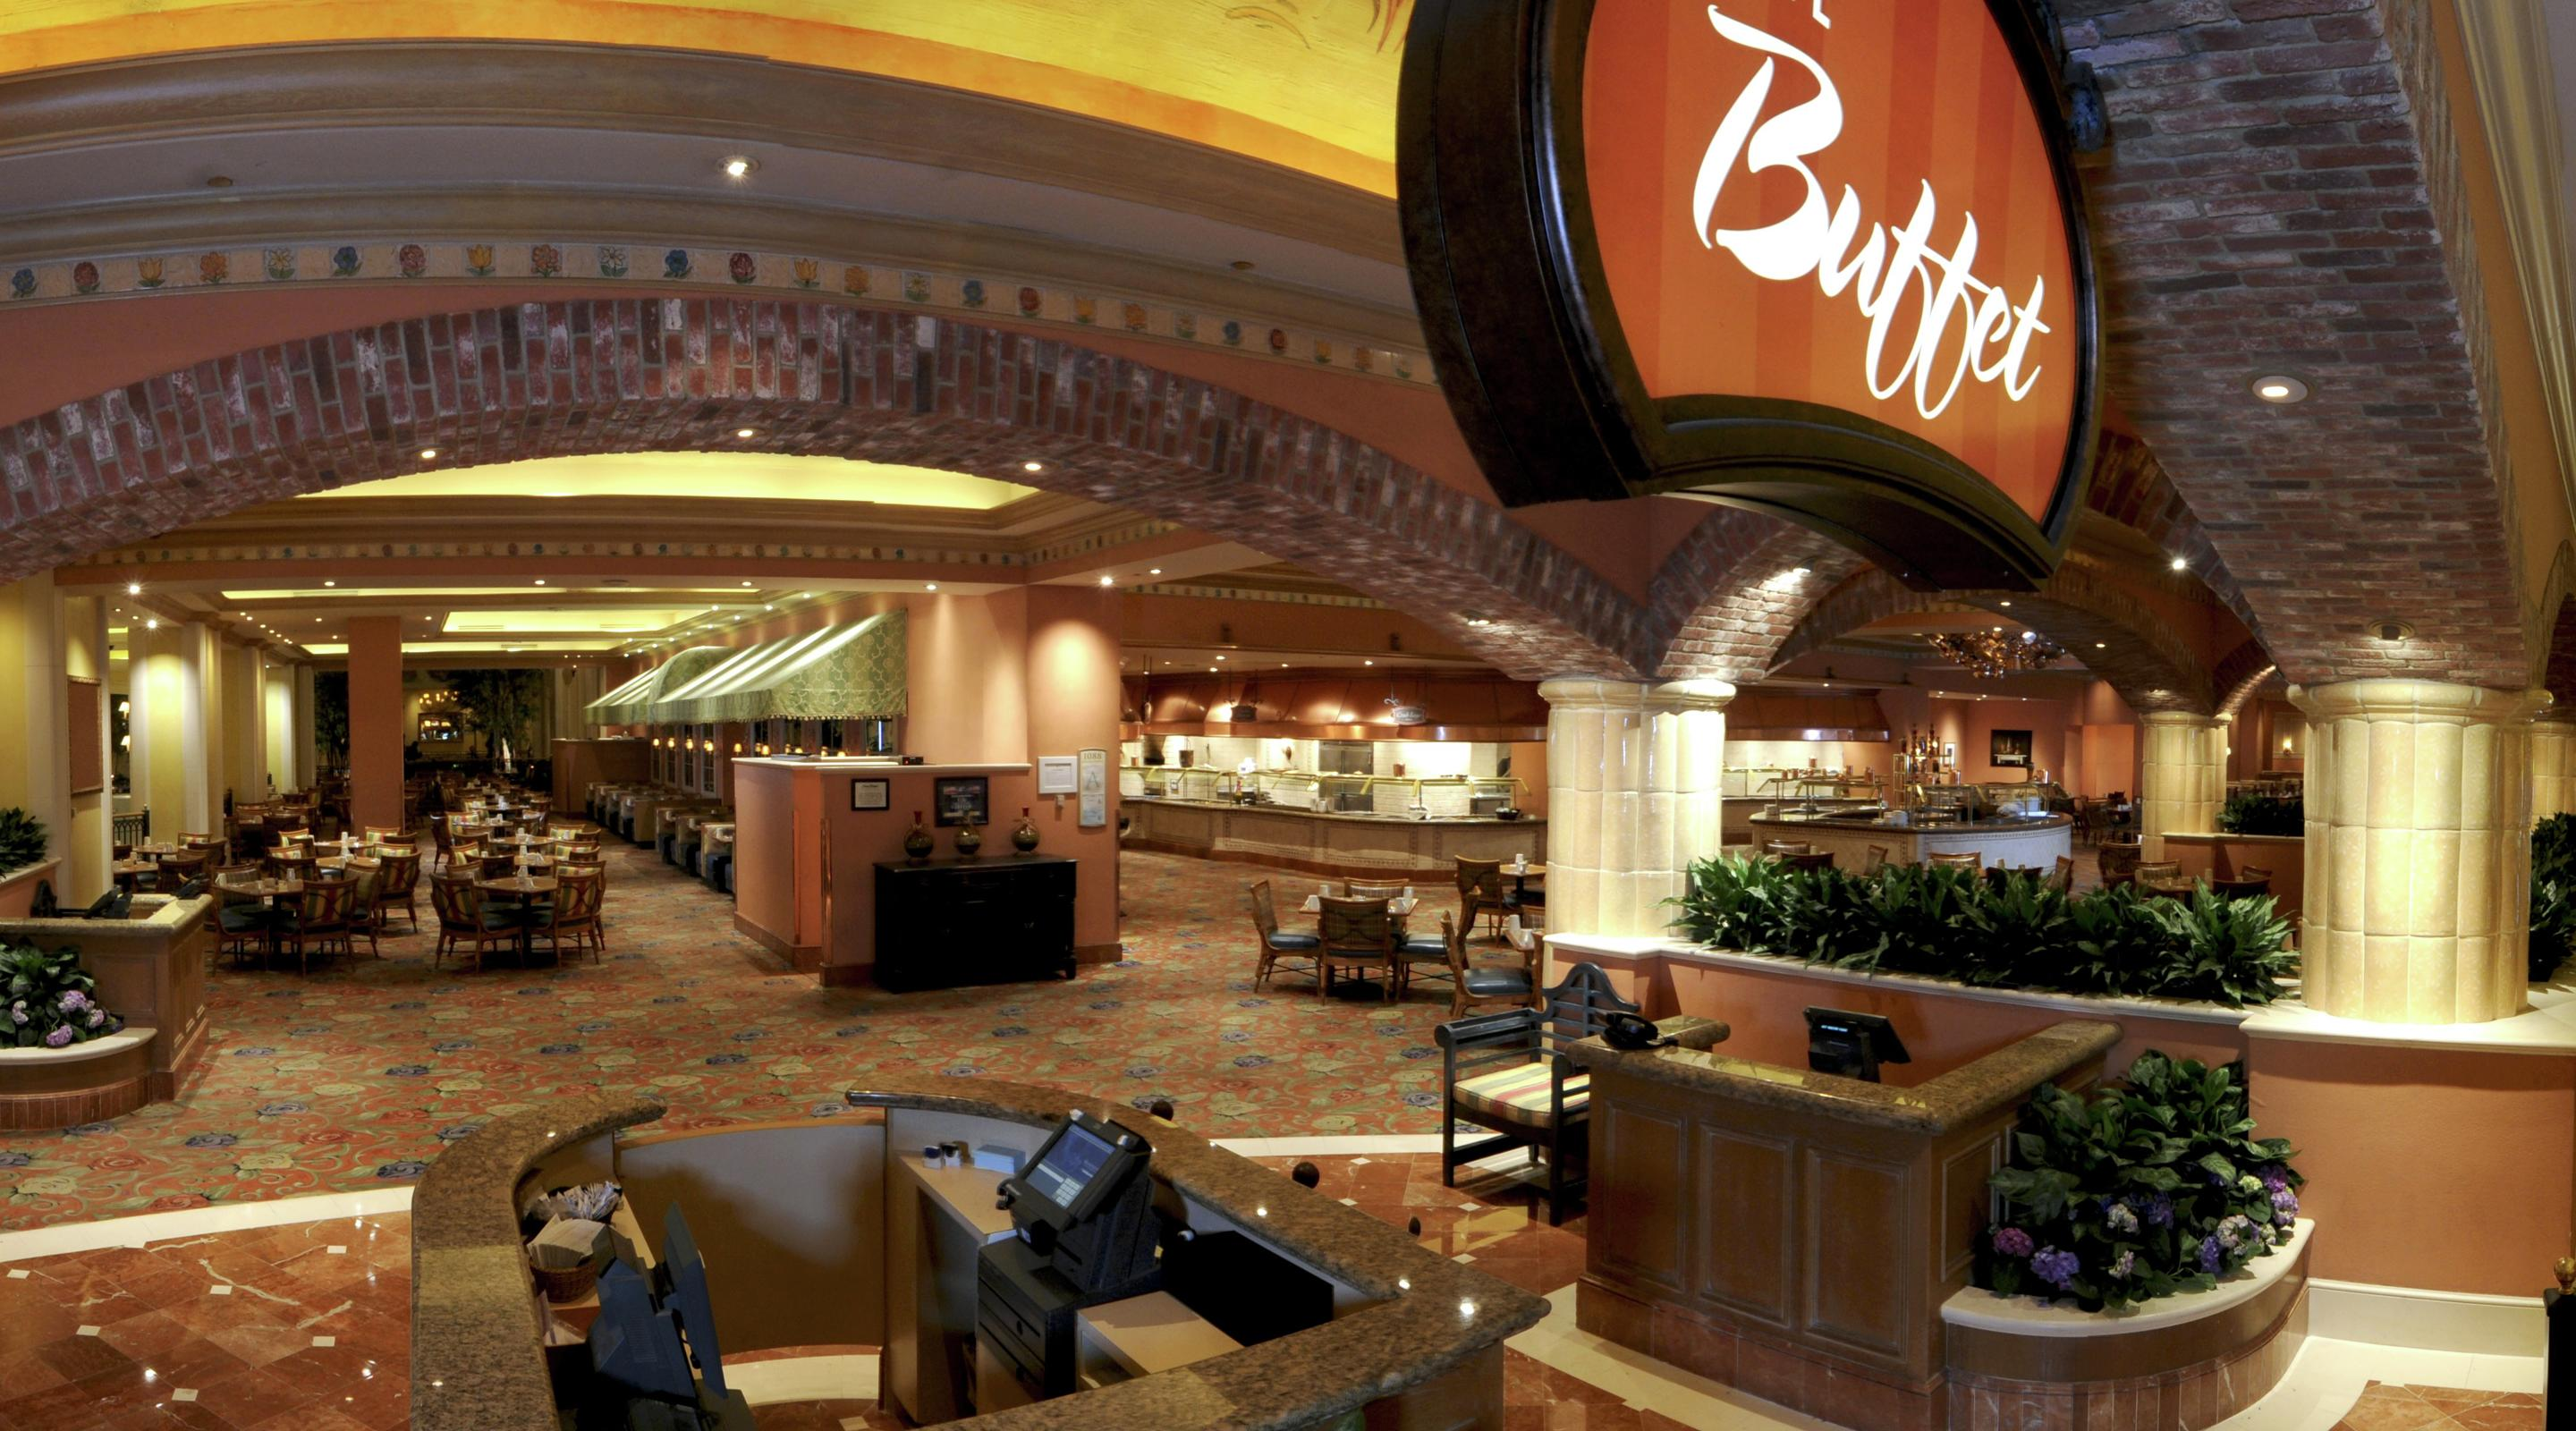 Buffet restaurant the buffet at beau rivage mgm resorts for Au beau rivage la cuisine